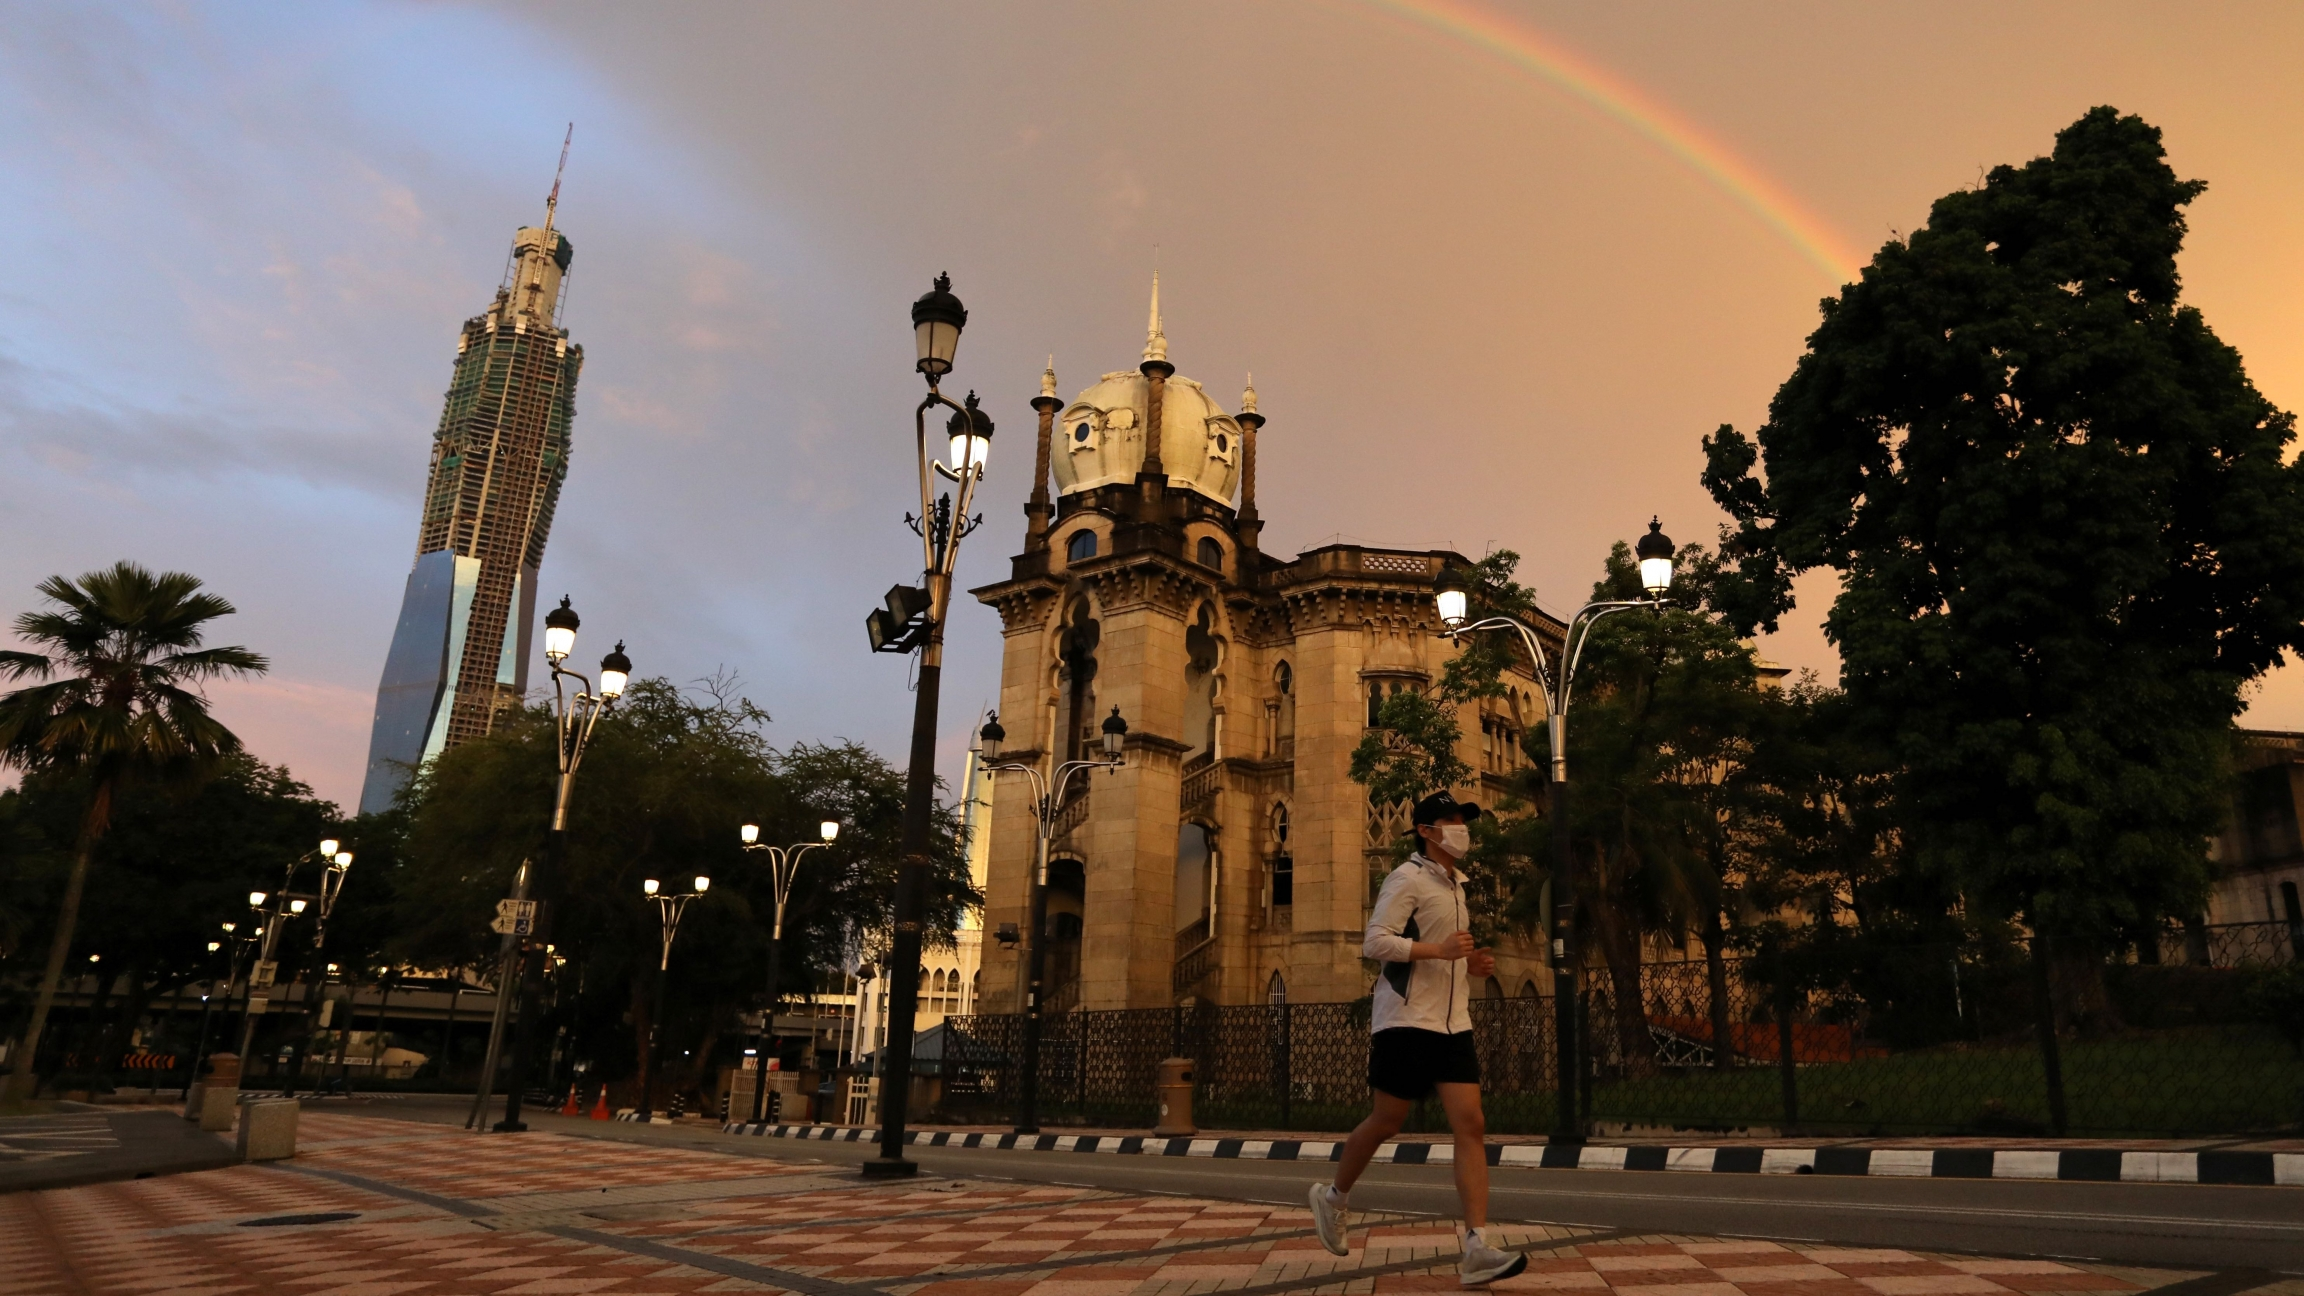 A man wearing protective face mask jogs under a rainbow as Malaysia reopens a majority of businesses, after a movement control order was imposed to fight the outbreak of the coronavirus disease (COVID-19), in Kuala Lumpur, Malaysia May 4, 2020.